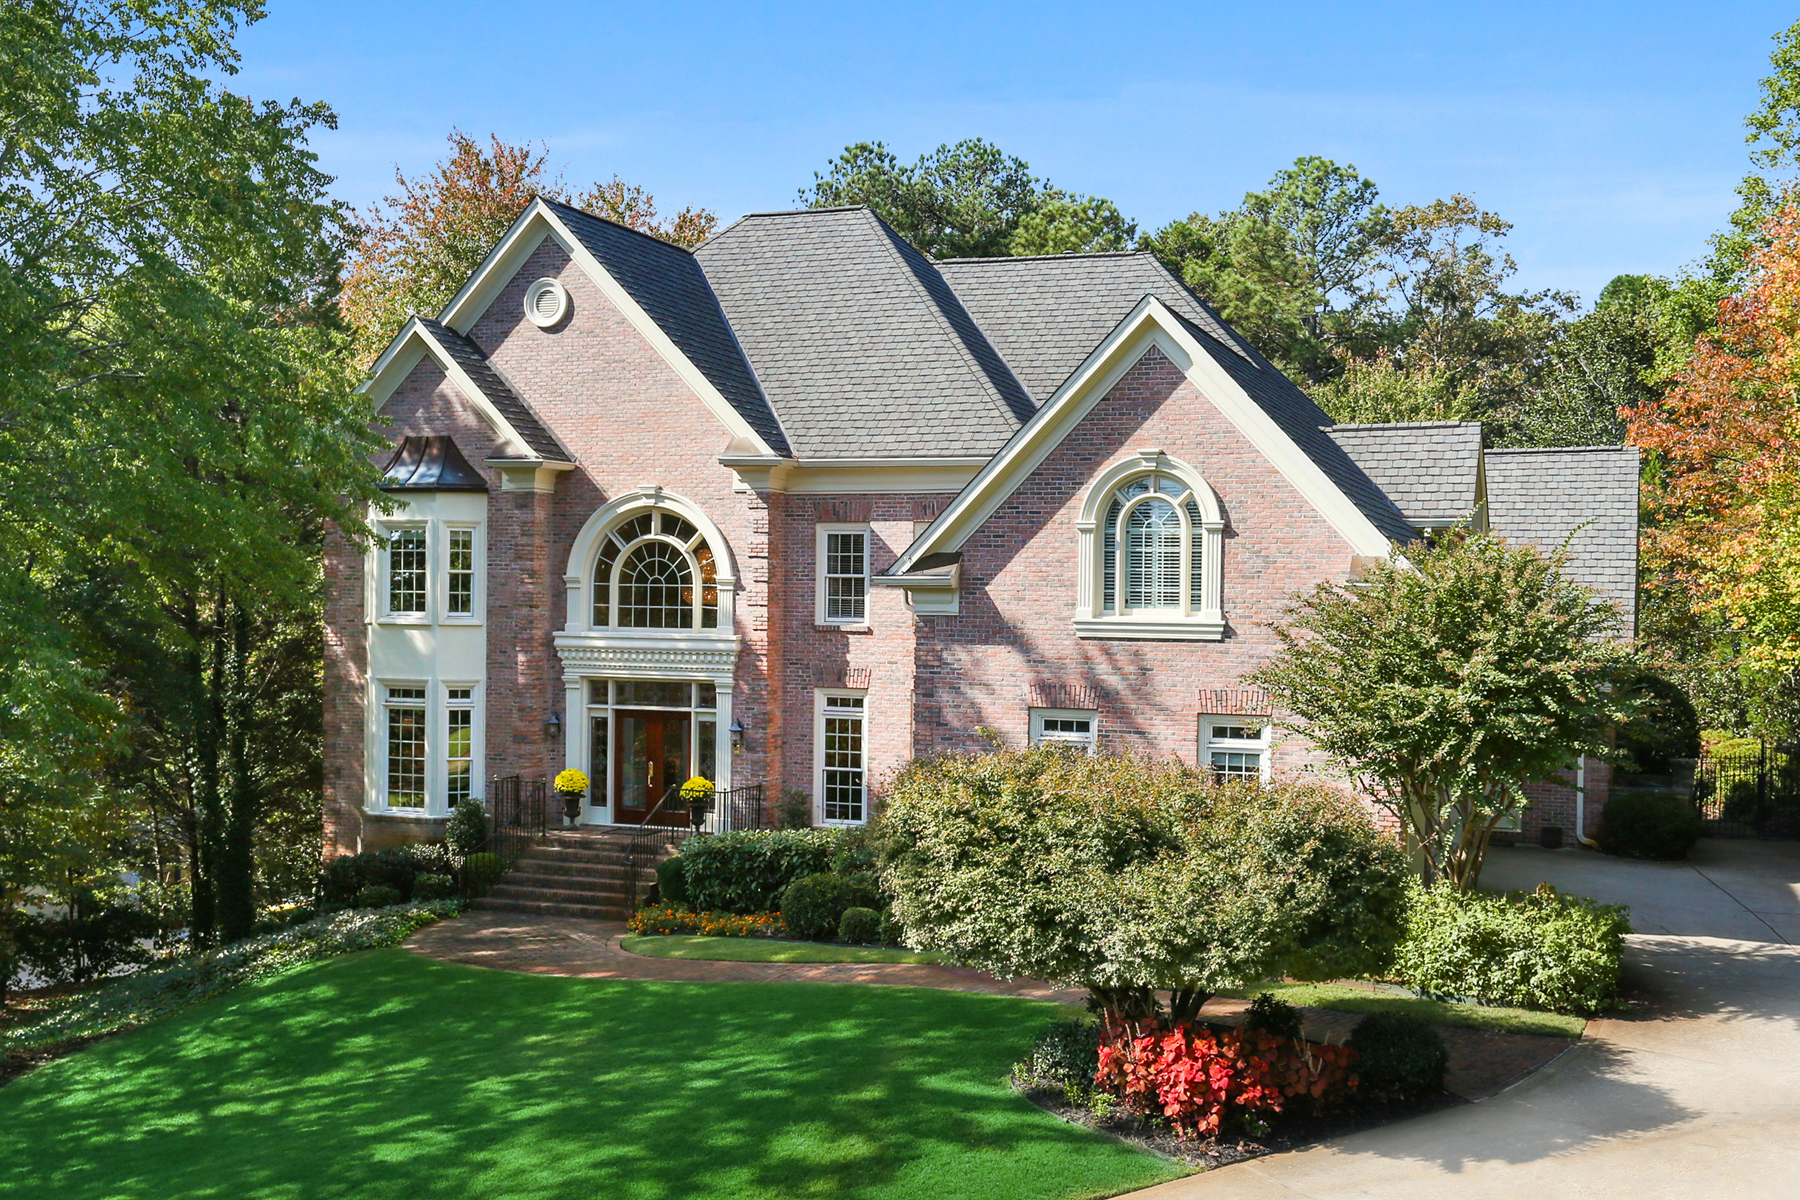 Moradia para Venda às Exceptional Custom Built Country Club of the South Brick Estate Home 3977 Merriweather Woods Alpharetta, Geórgia 30022 Estados Unidos